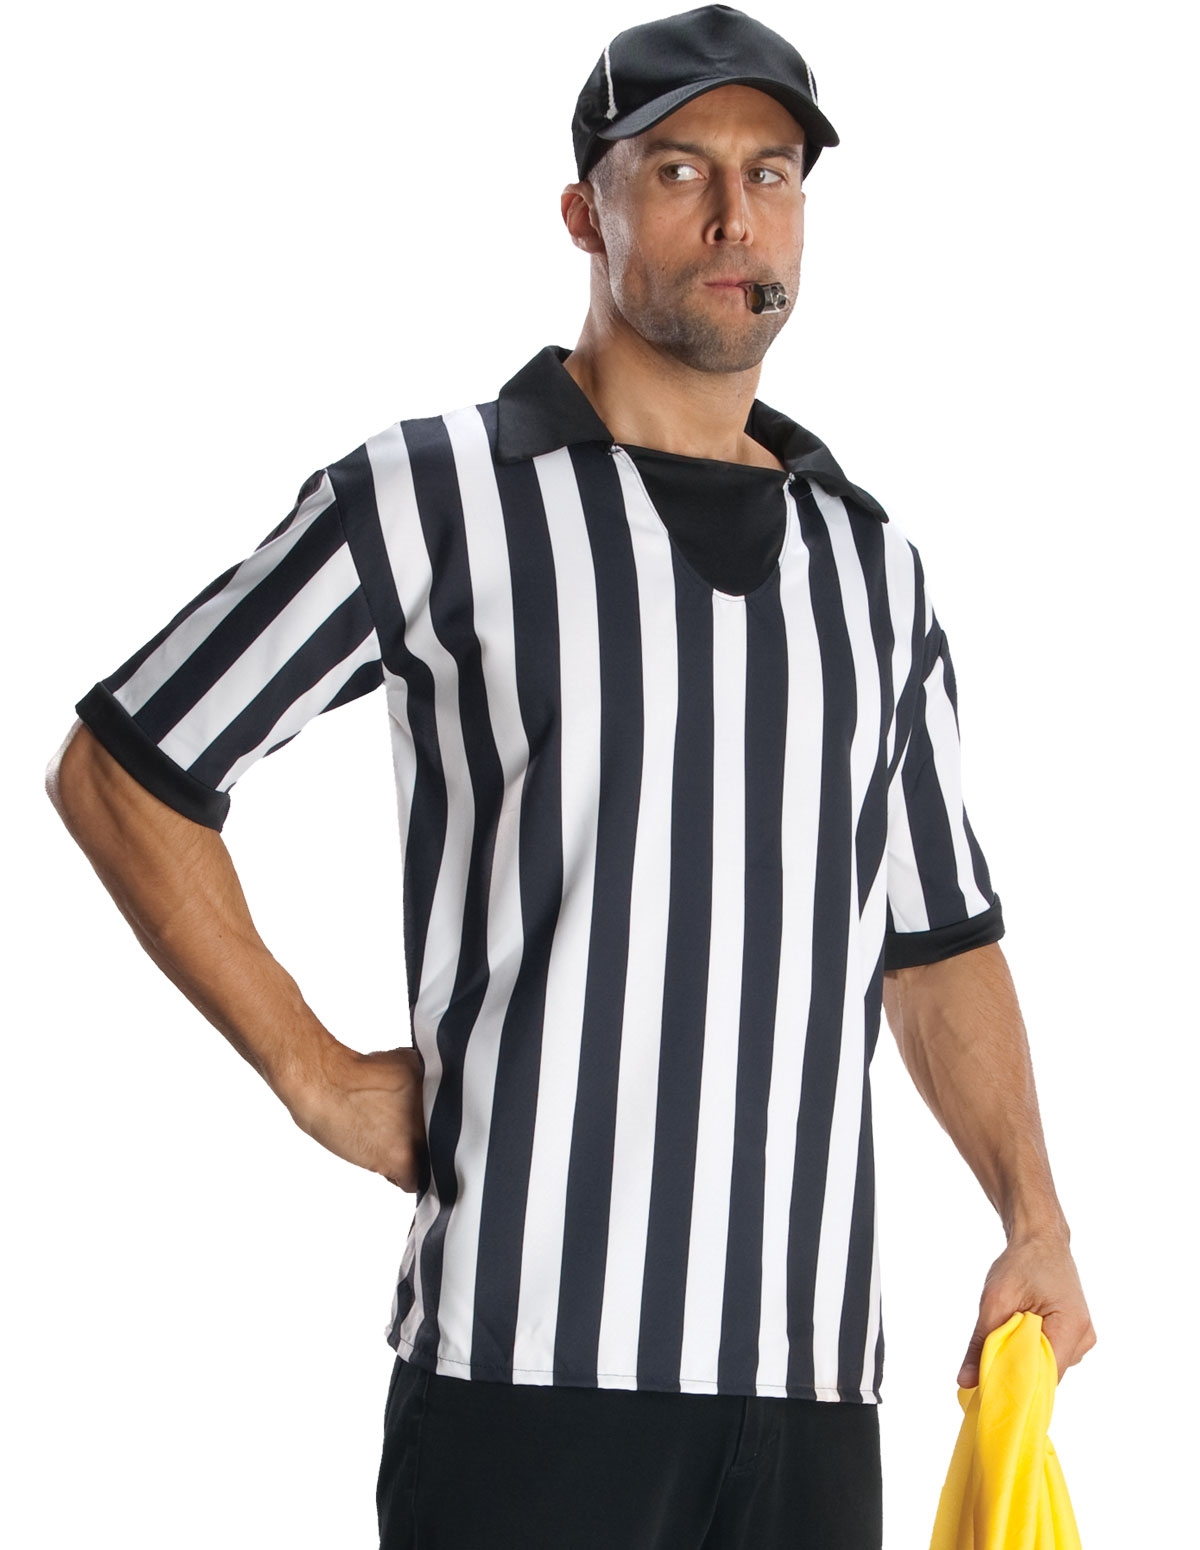 4Pc Referee Costume